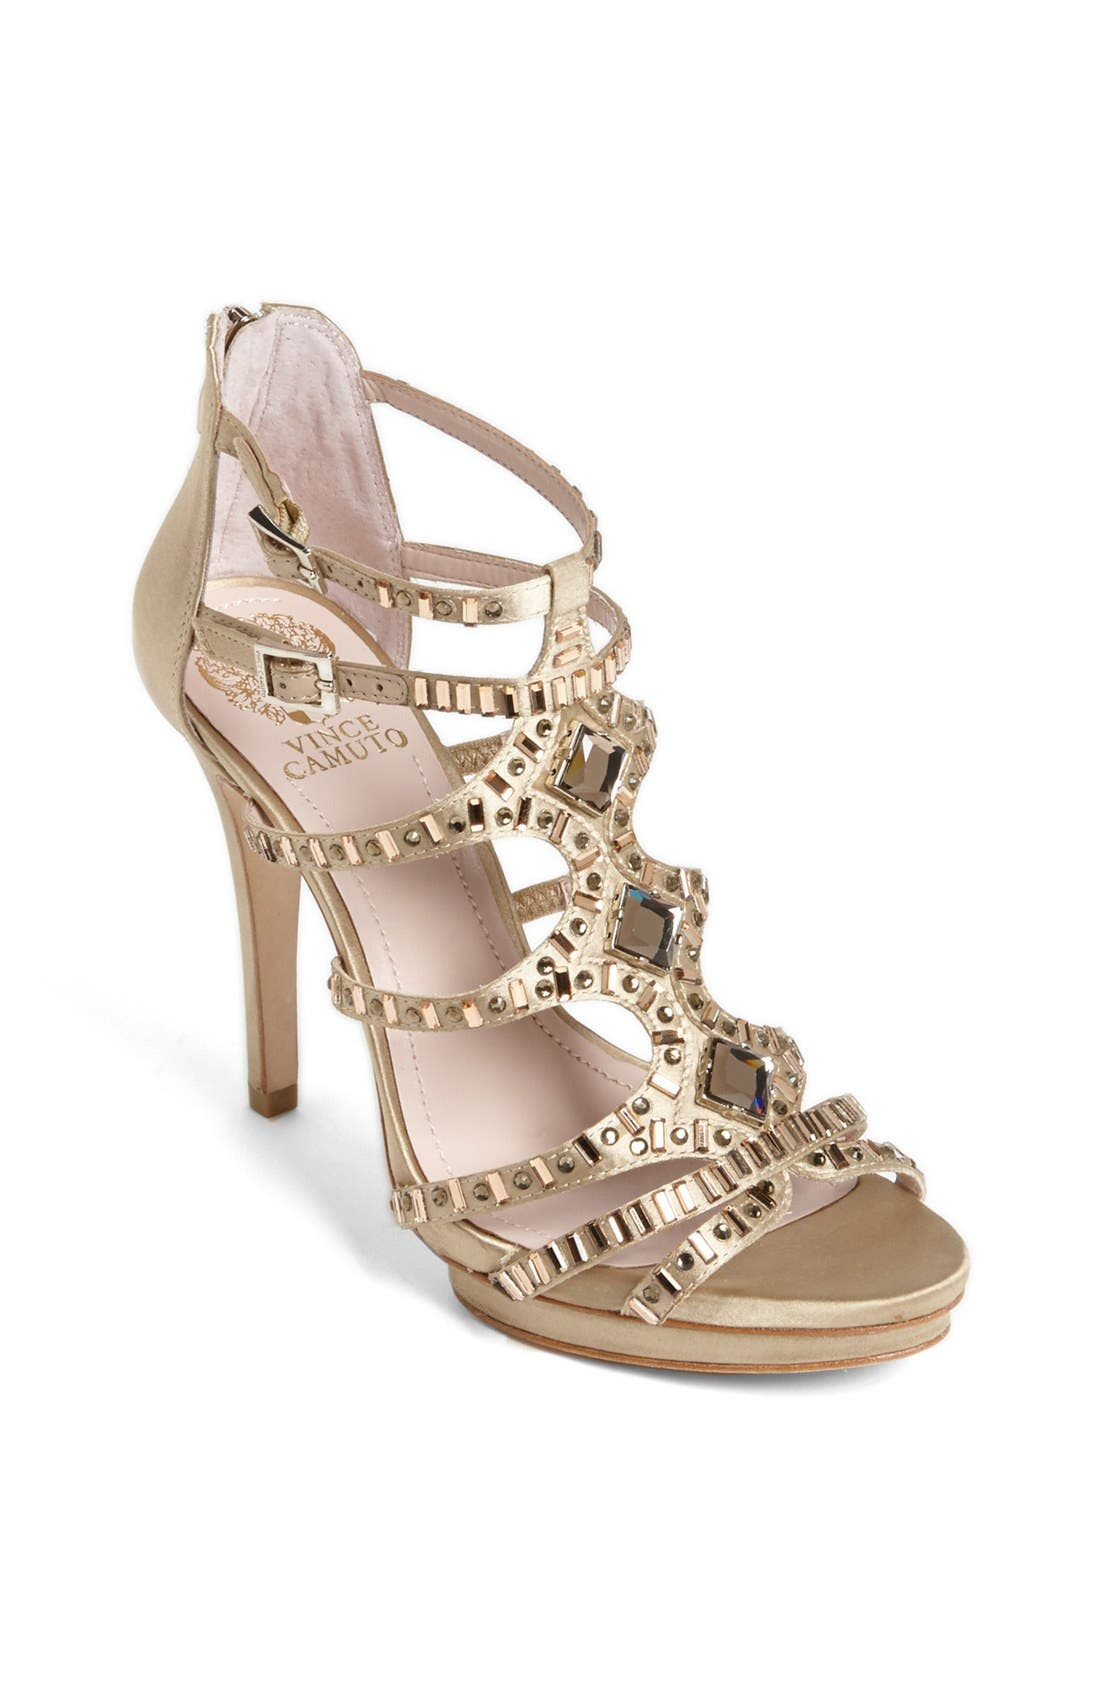 Main Image - Vince Camuto 'Crista' Sandal